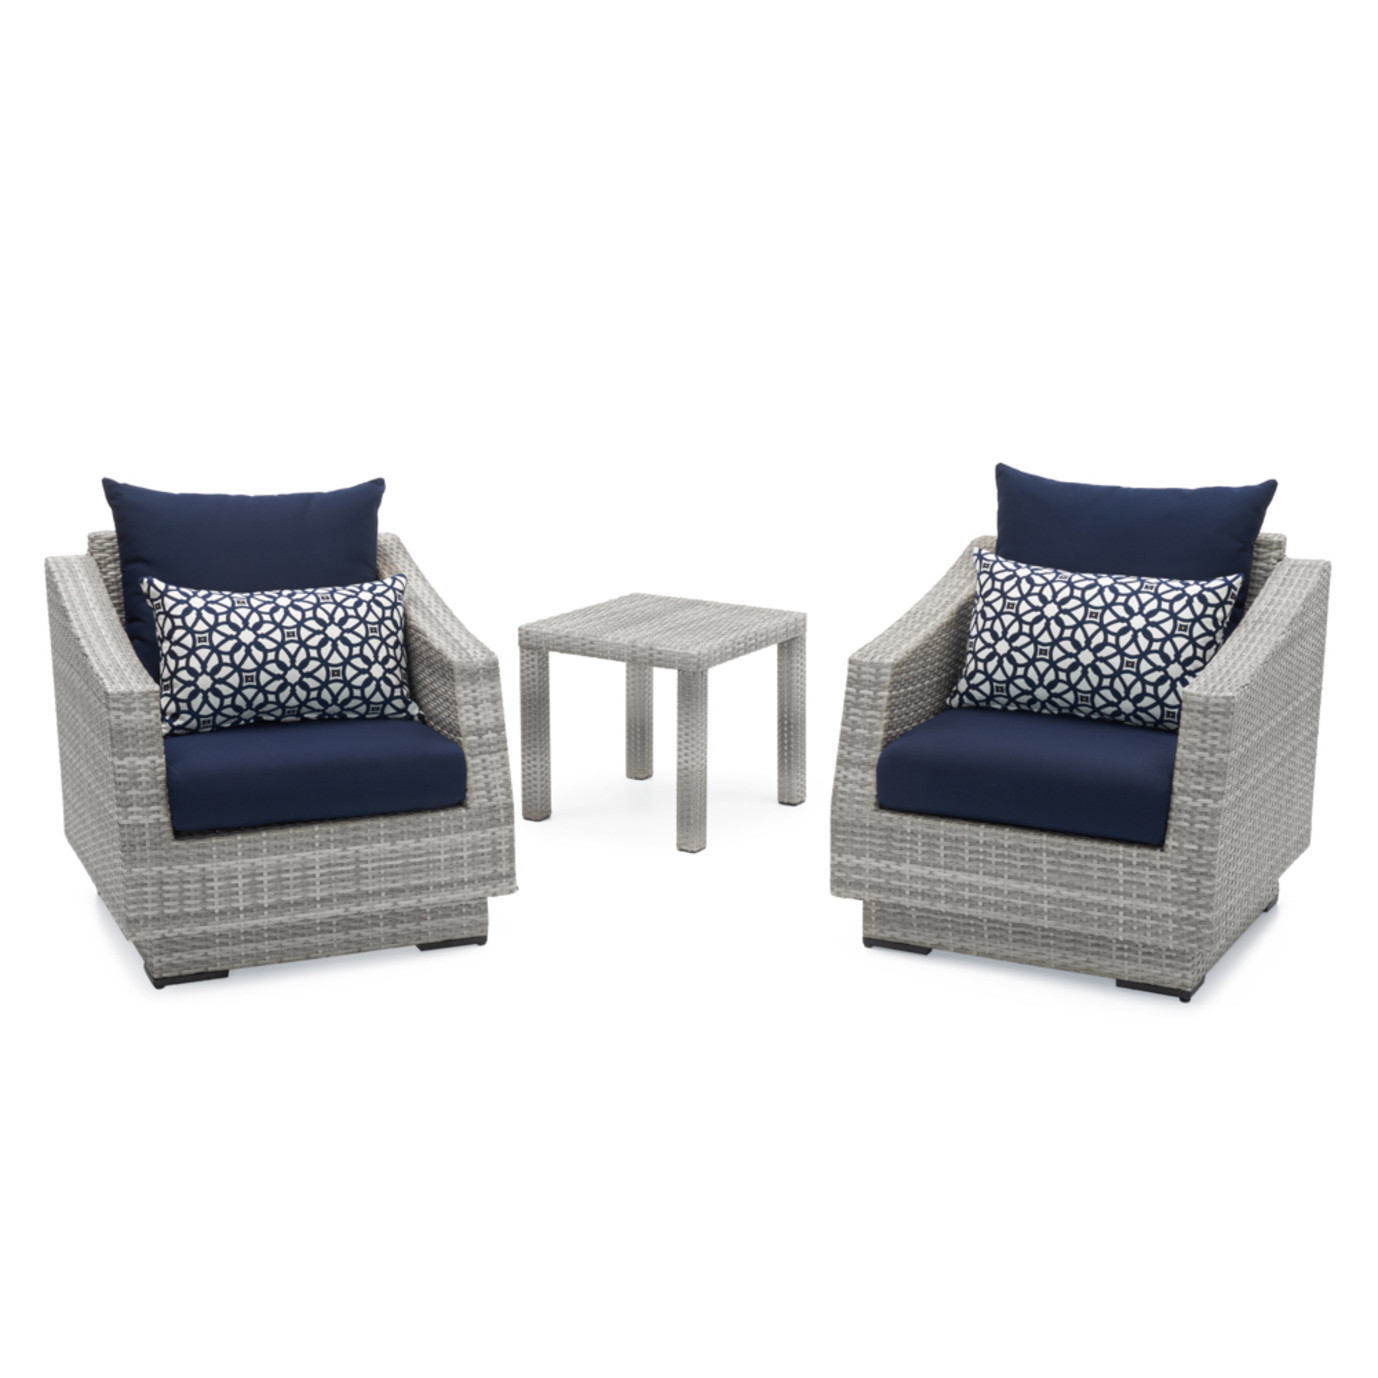 Cannes™ Club Chairs and Side Table - Navy Blue